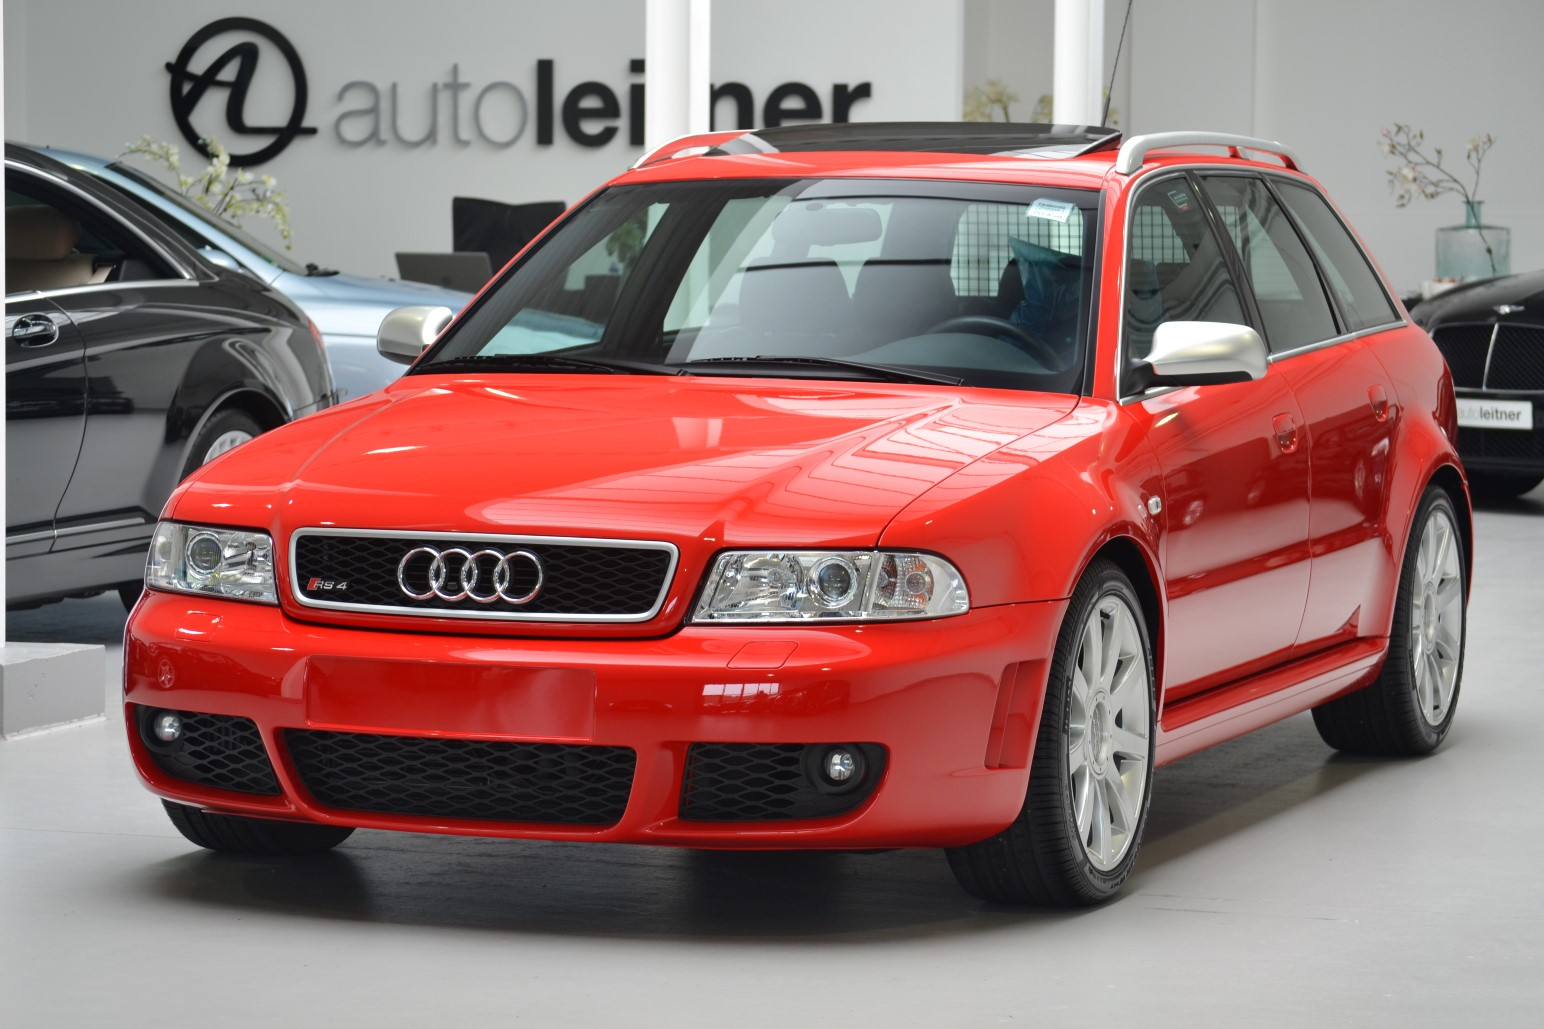 Audi RS4 (B5) vorne links